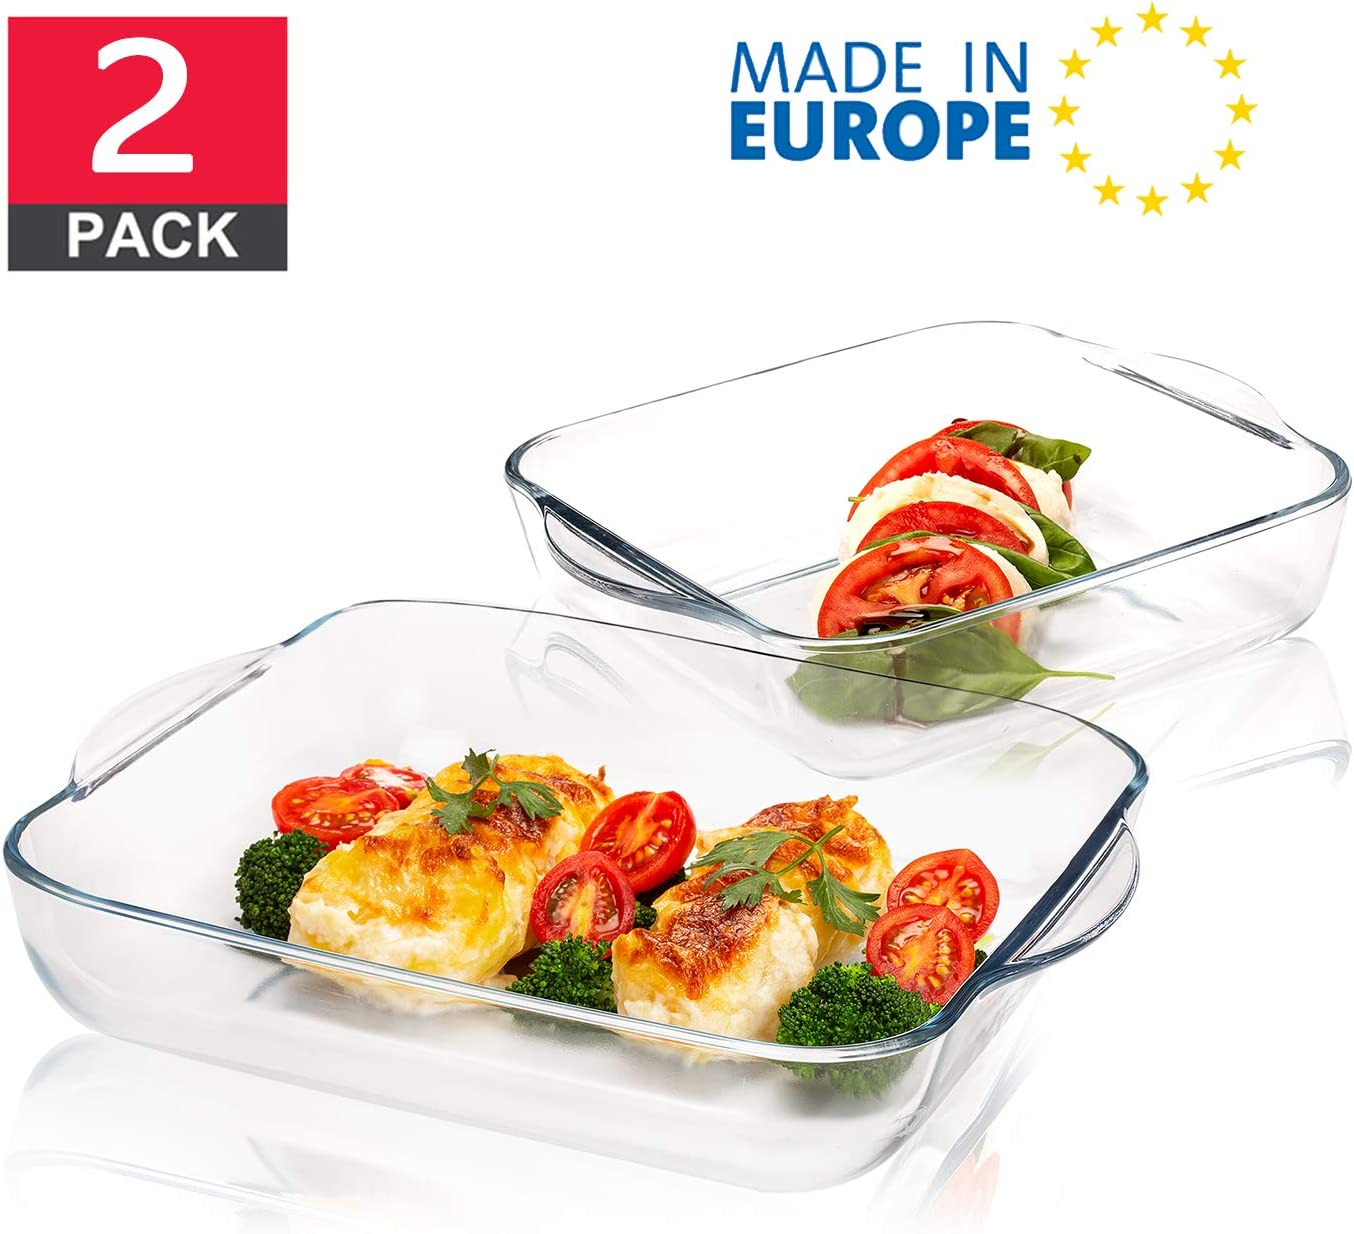 Glass Baking Dish for Oven, Casserole Dish, Square Baking Trays for Oven, Borosilicate Glass for Baking, Set of 2 PCs